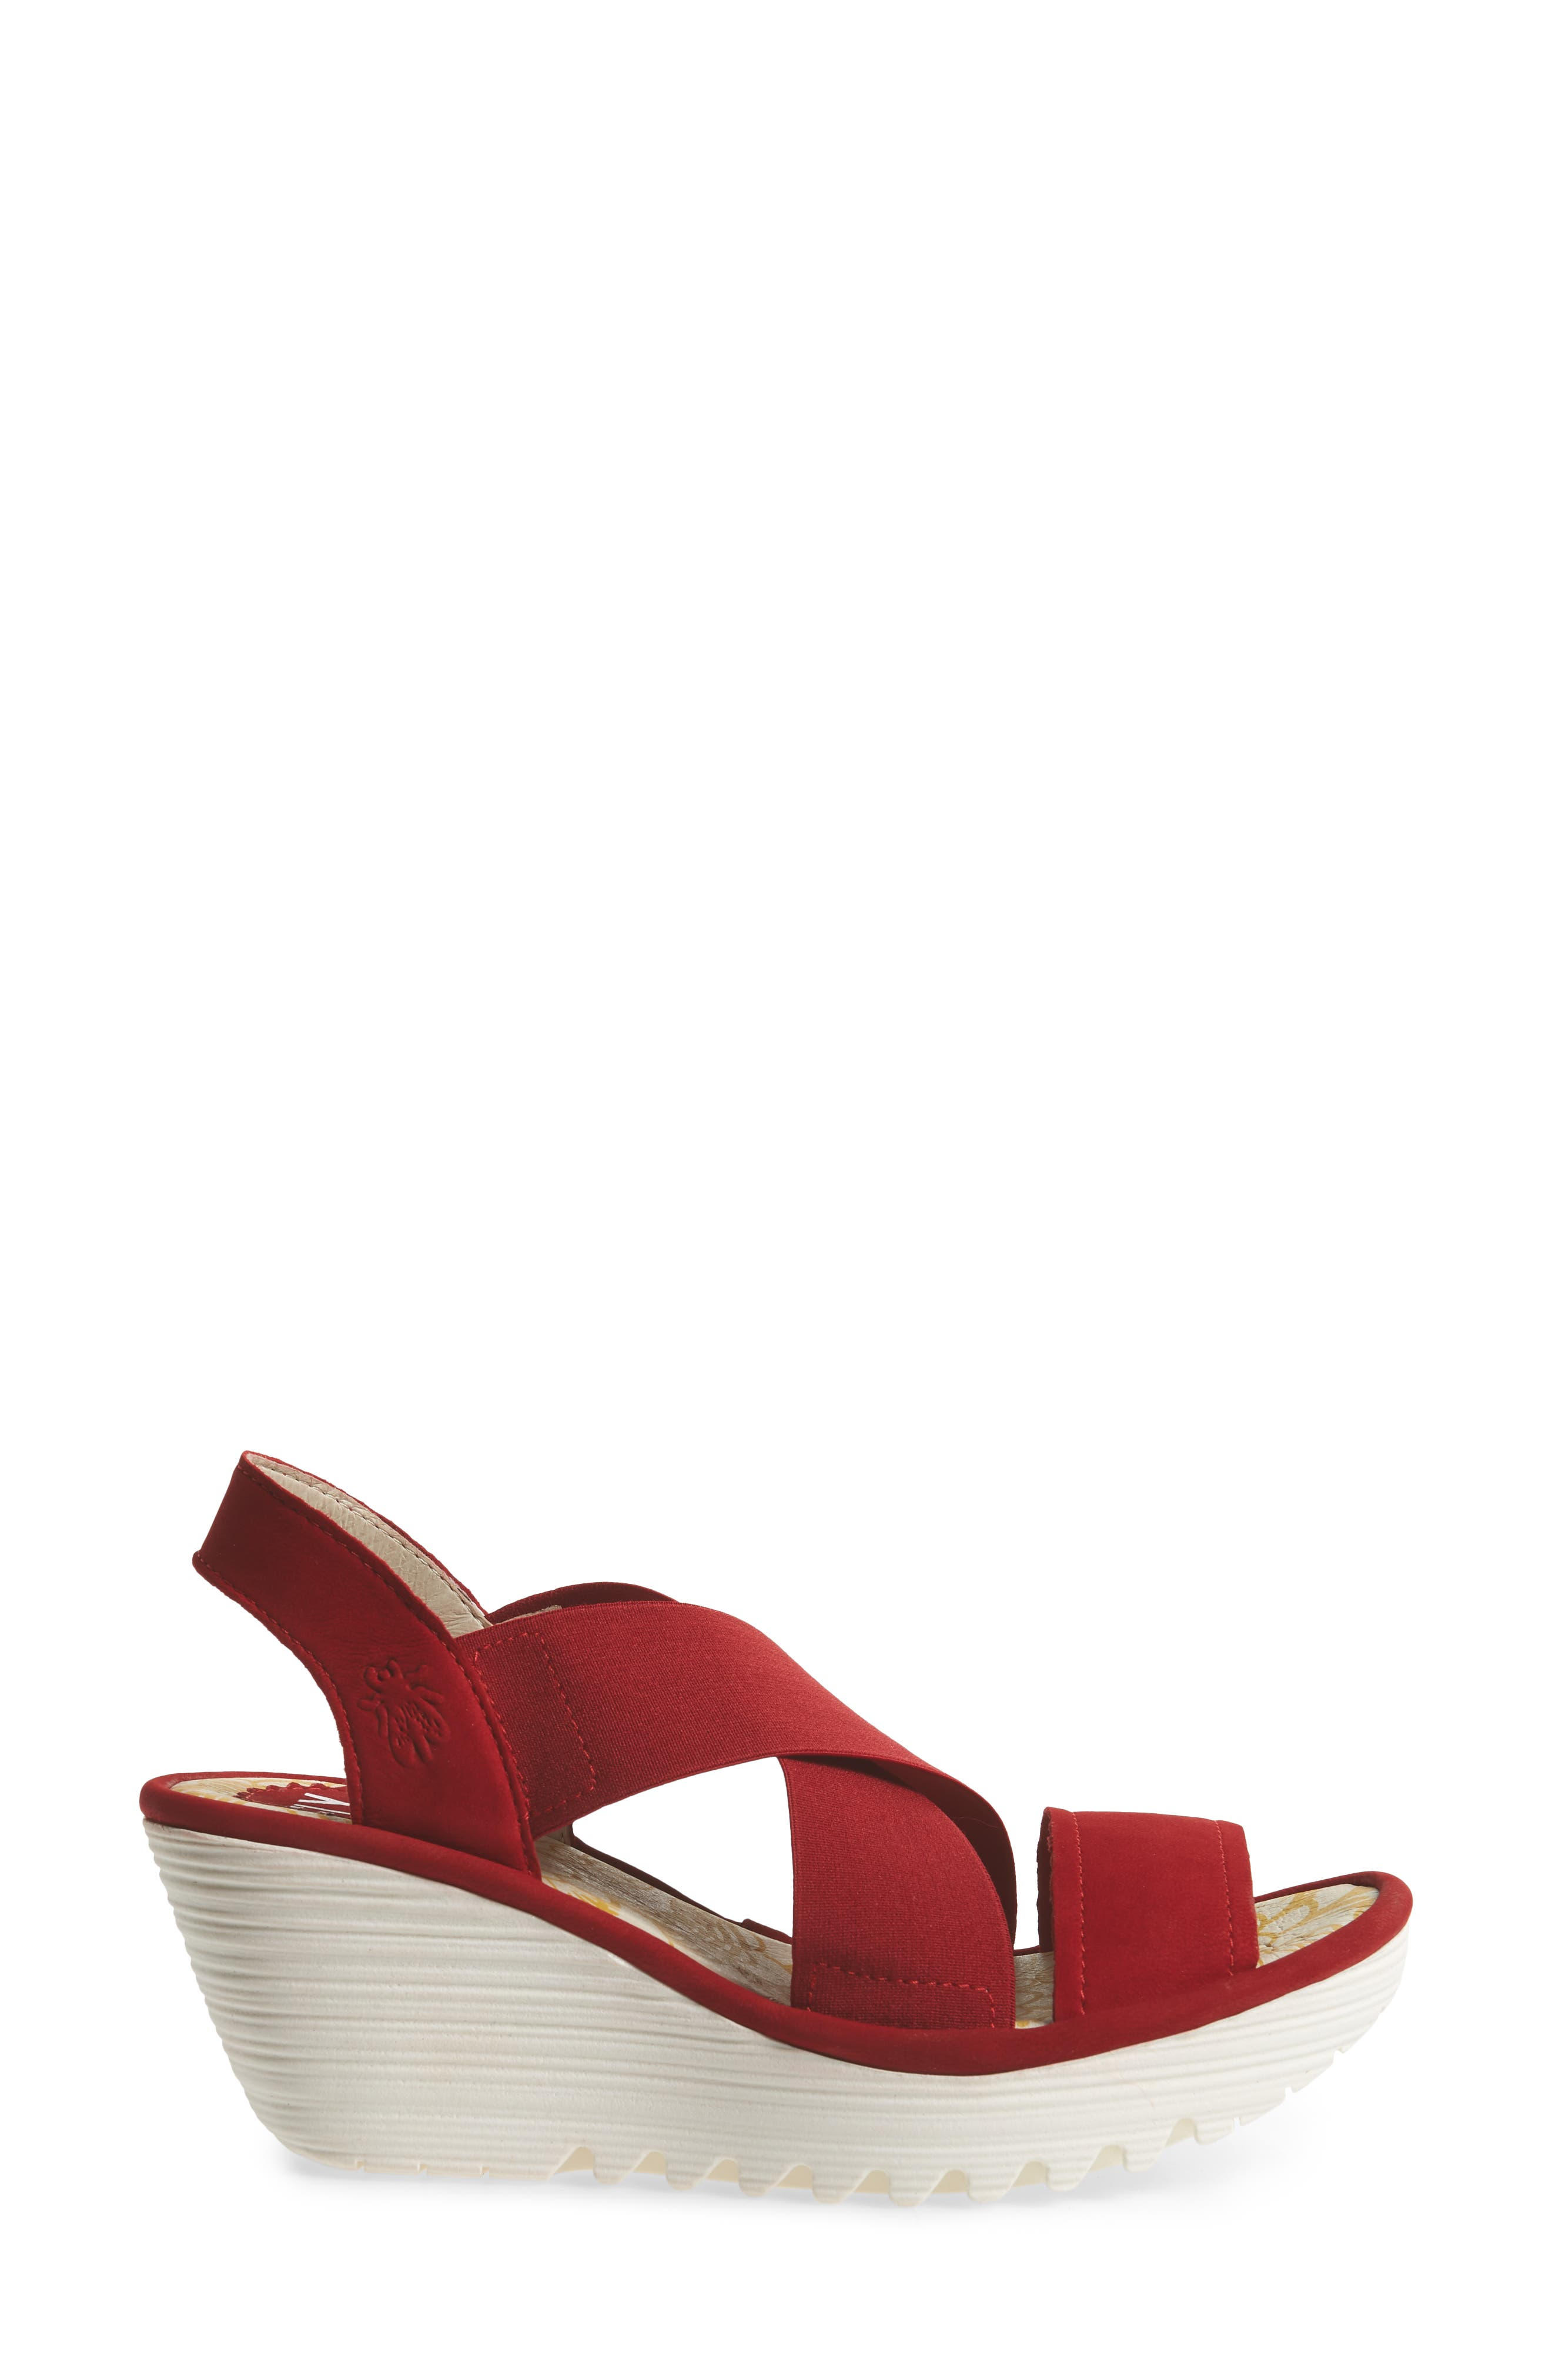 Yaji Cross Wedge Sandal,                             Alternate thumbnail 3, color,                             RED LEATHER